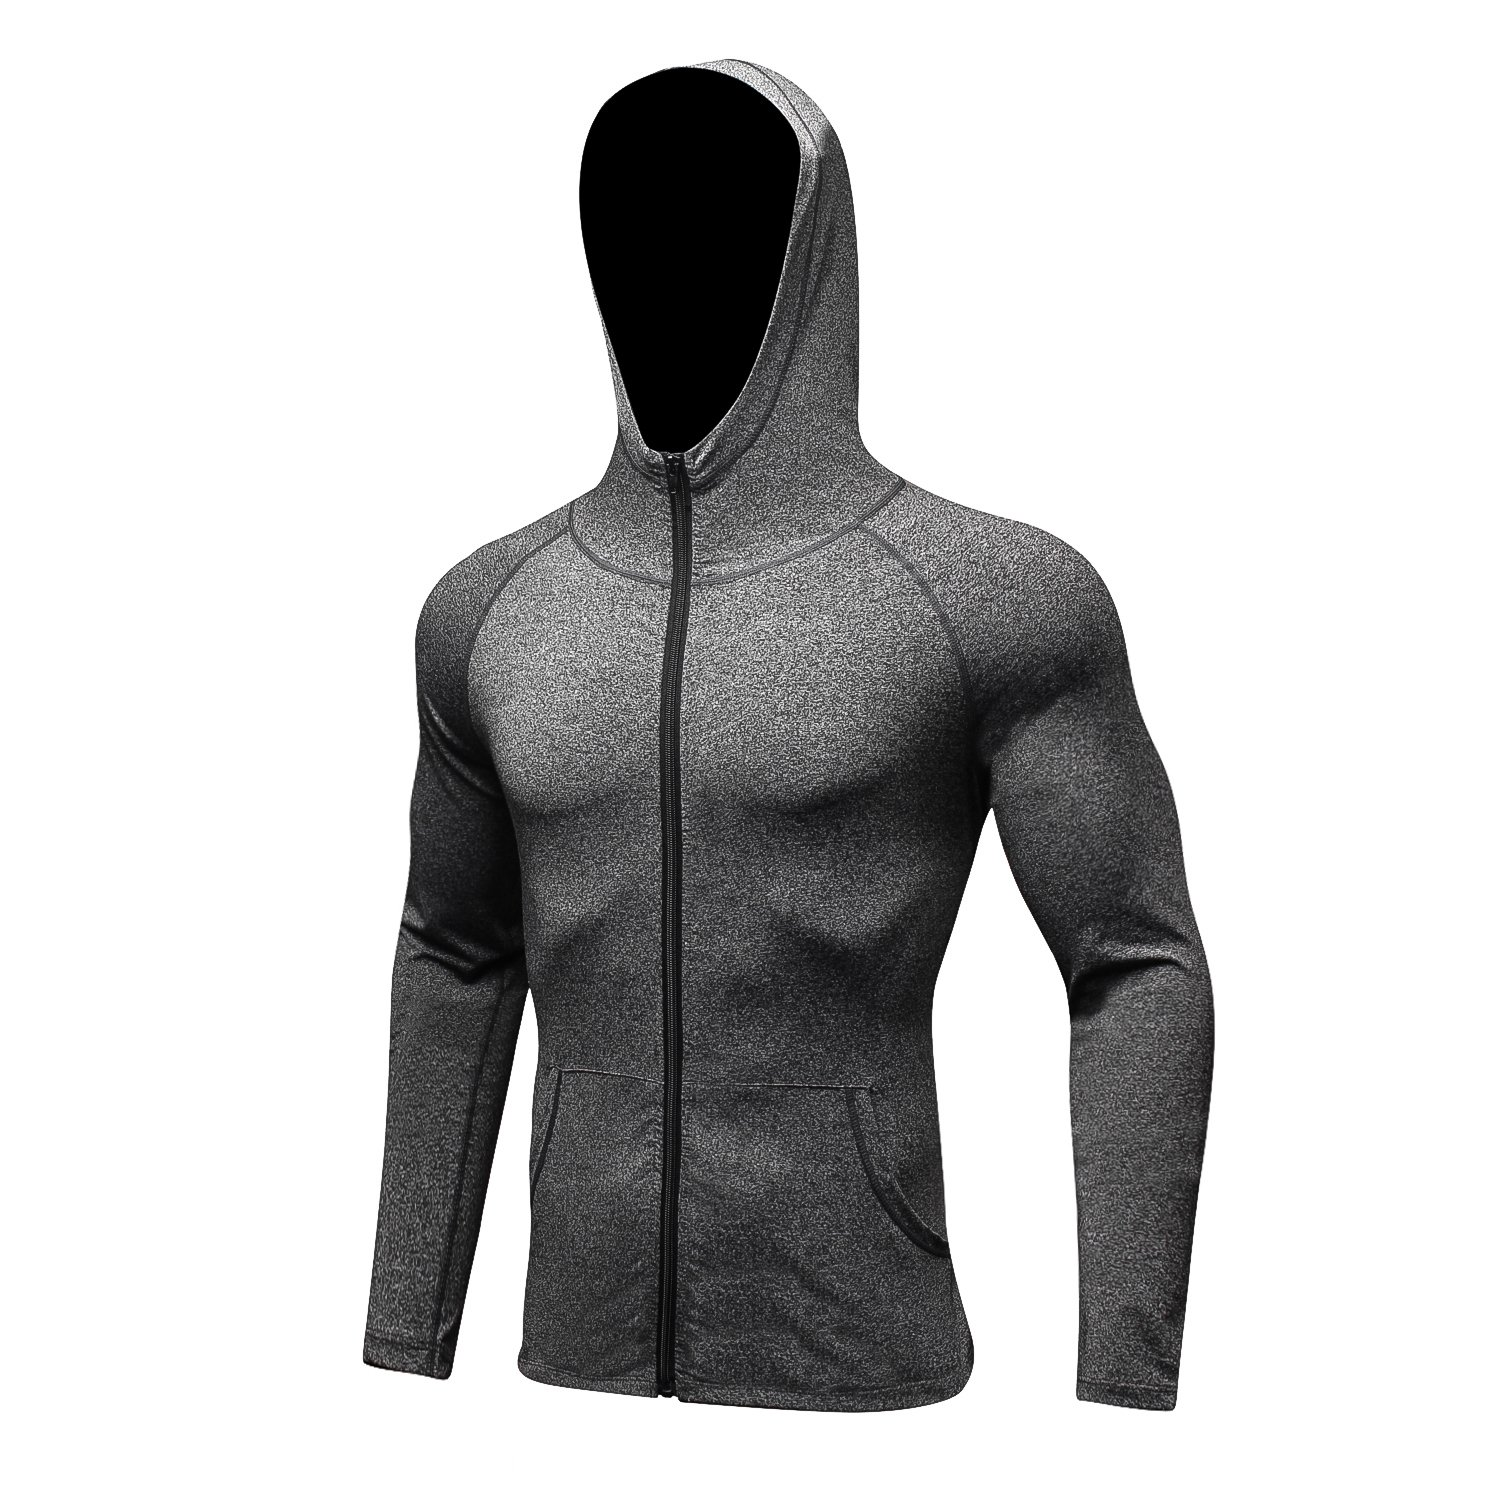 RoxZoom Men's Sports Training Hooded Coat, Quick Dry Long Sleeve Workout Athletic Hoodie Jacket